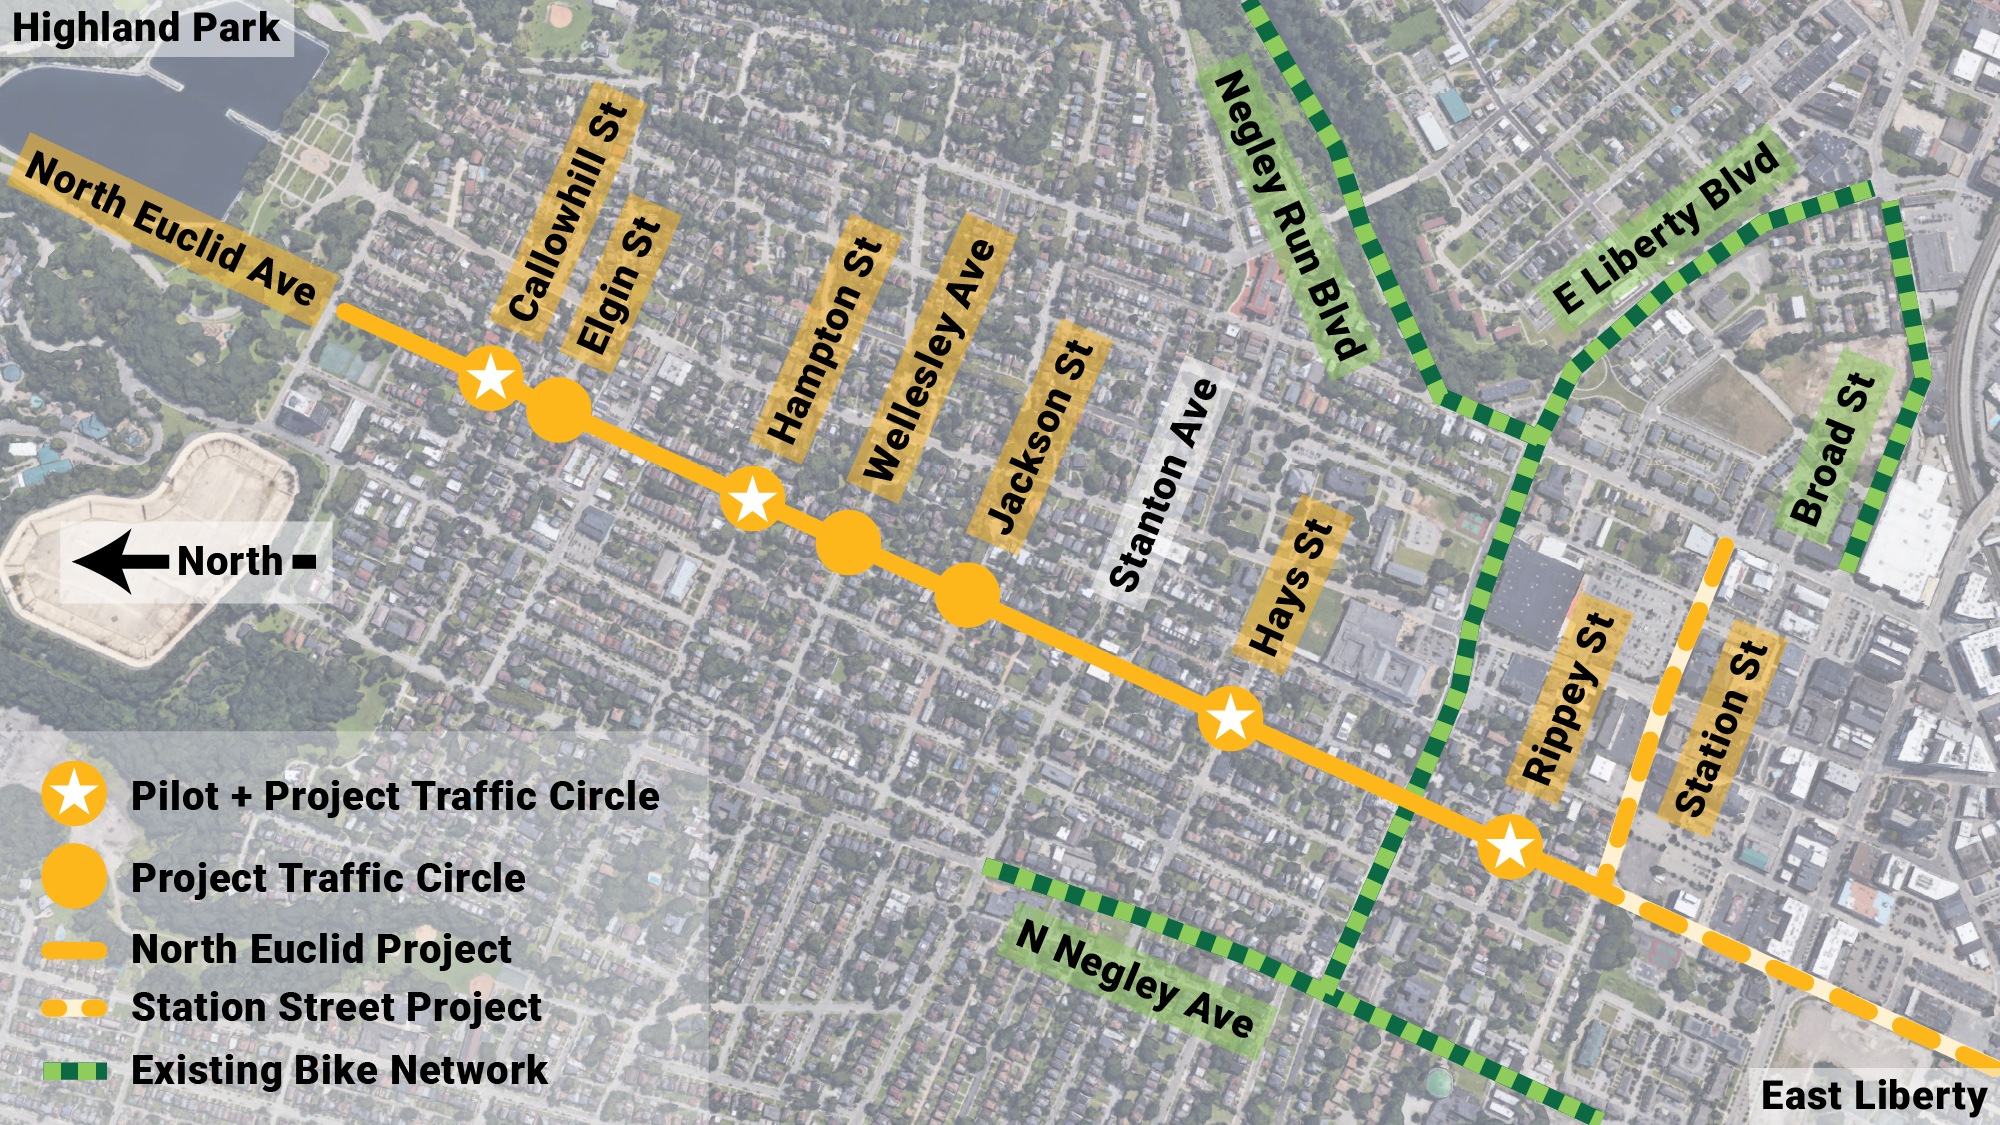 Map showing the project extents from Bunker Street to Station Street as well as the location of traffic circles and other nearby bike routes, for more information please see the full project page linked at the end of this page.